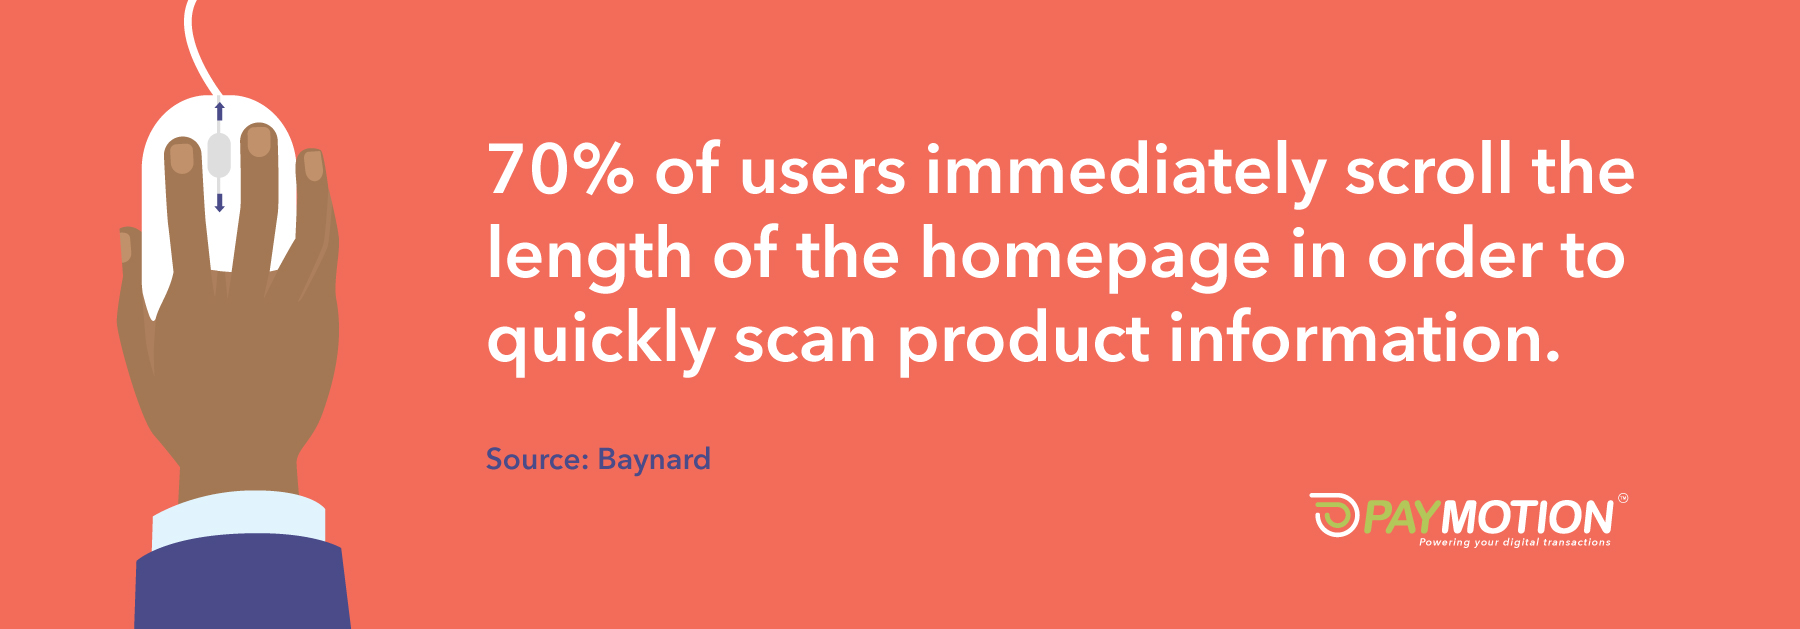 70% of users immediately scroll the length of the homepage in order to quickly scan the products.